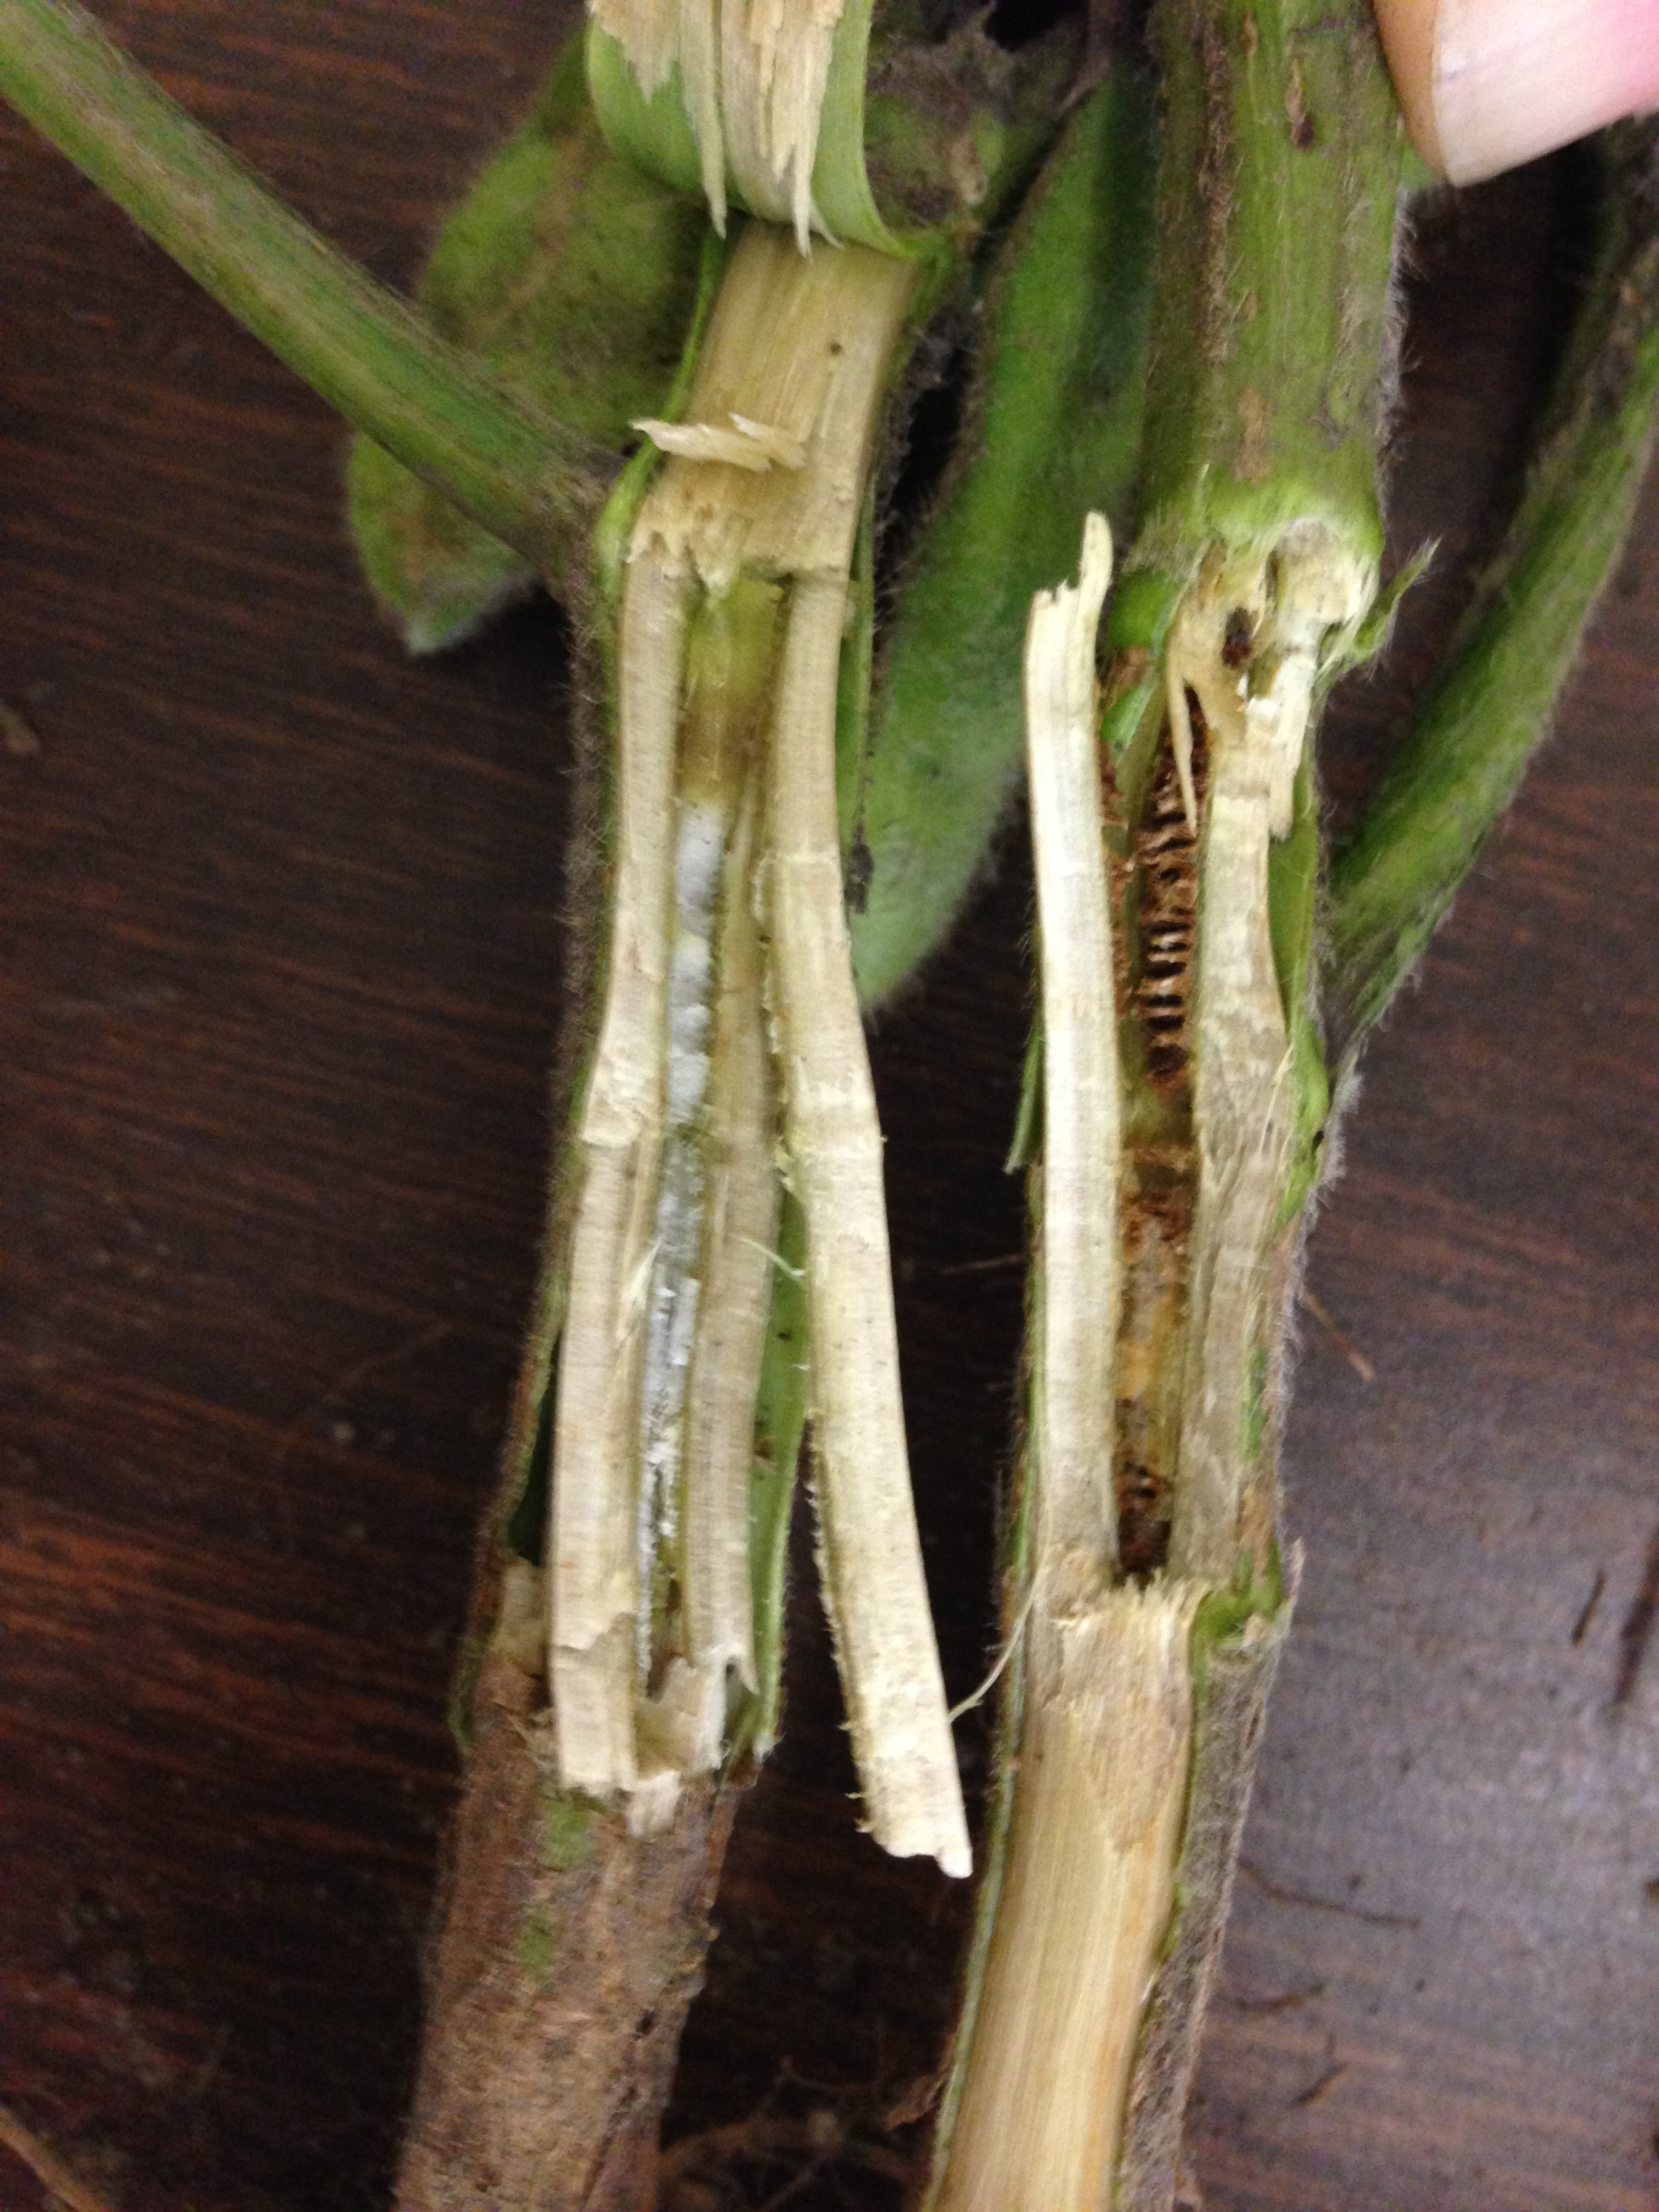 Vascular and pith tissue discoloration from brown stem rot.